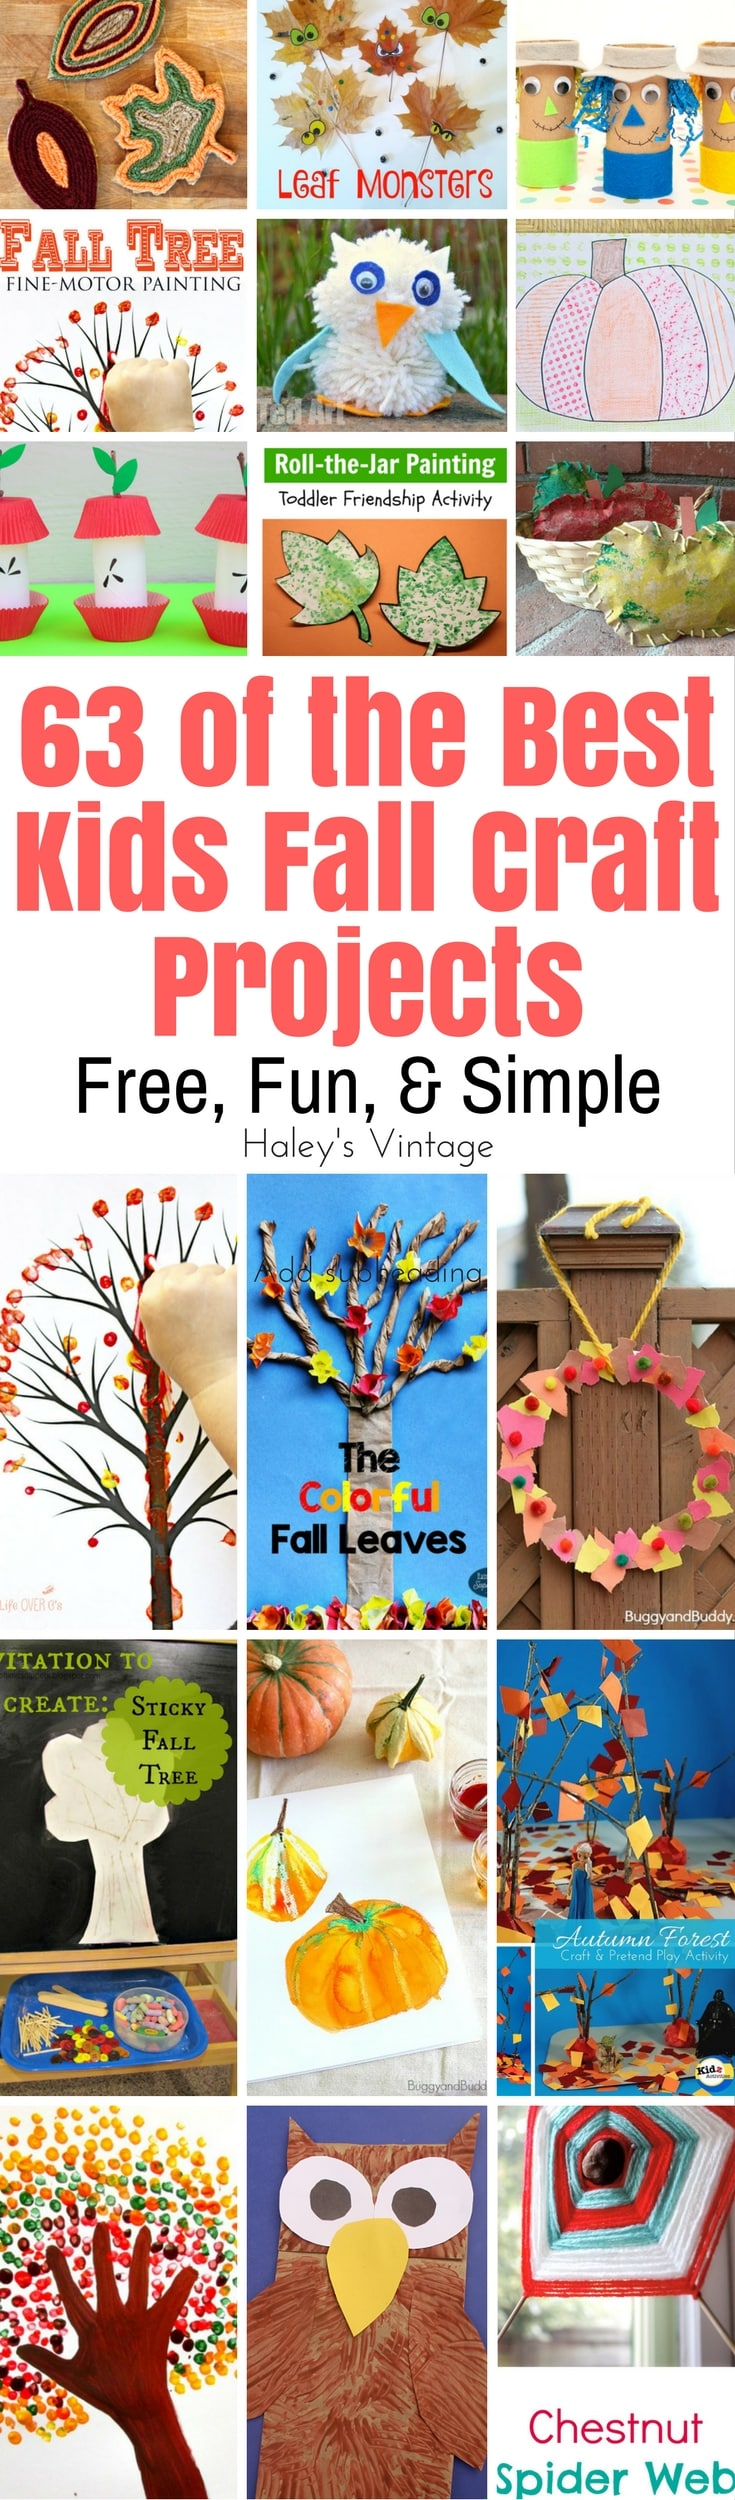 You can help them to enjoy Fall with Kids Fall Craft Projects. With 63 free craft projects, you'll be able to find projects all of the kids will love!